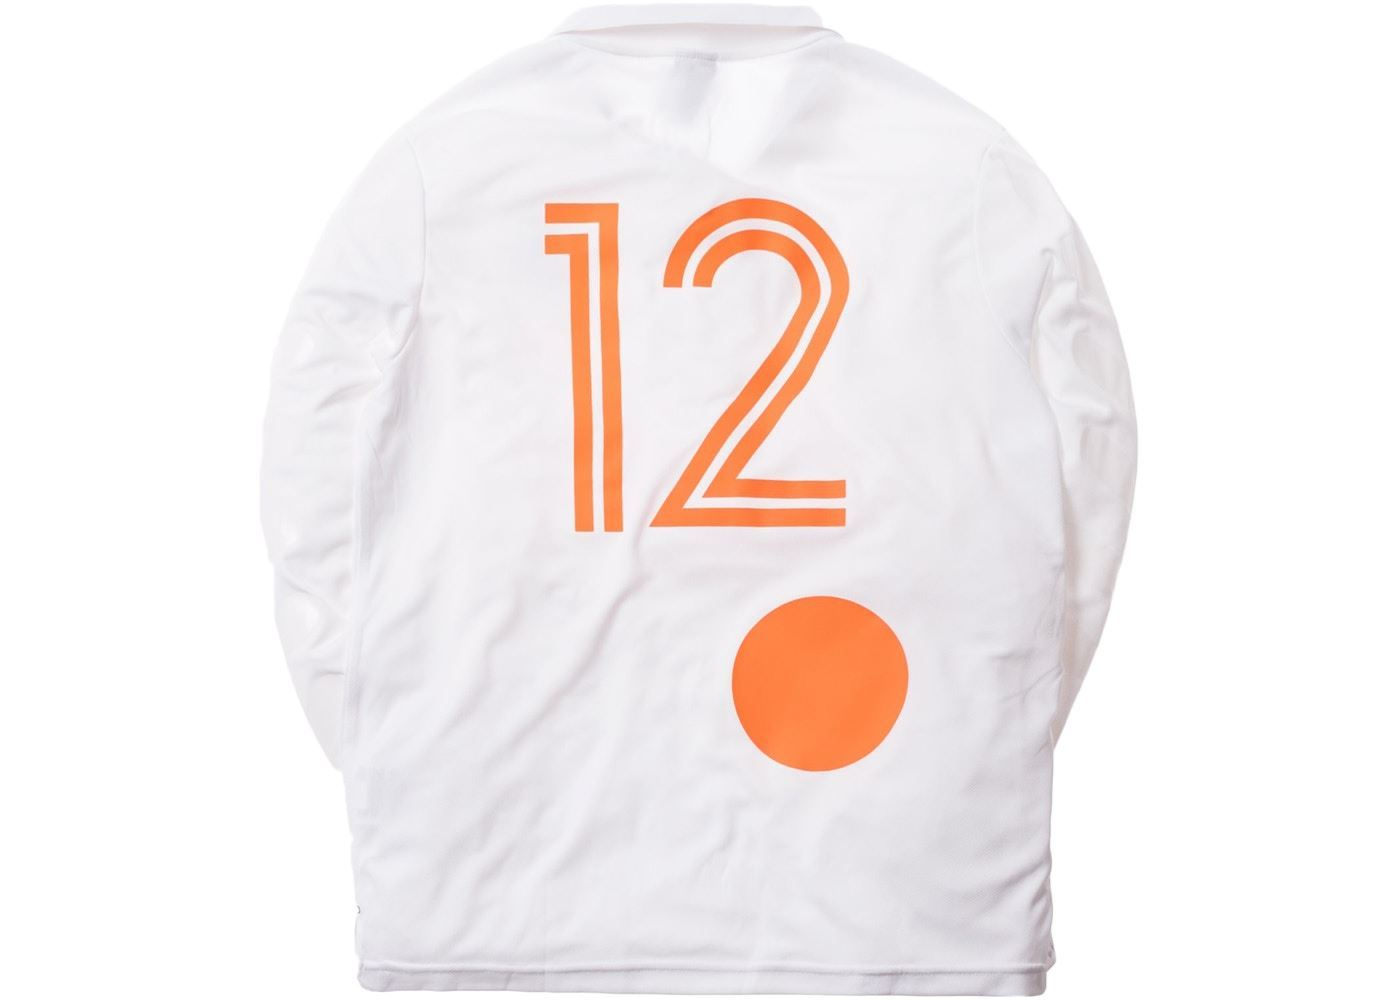 33b8fb57 ... Picture of Nikelab x OFF-WHITE Mercurial NRG X FB Jersey White